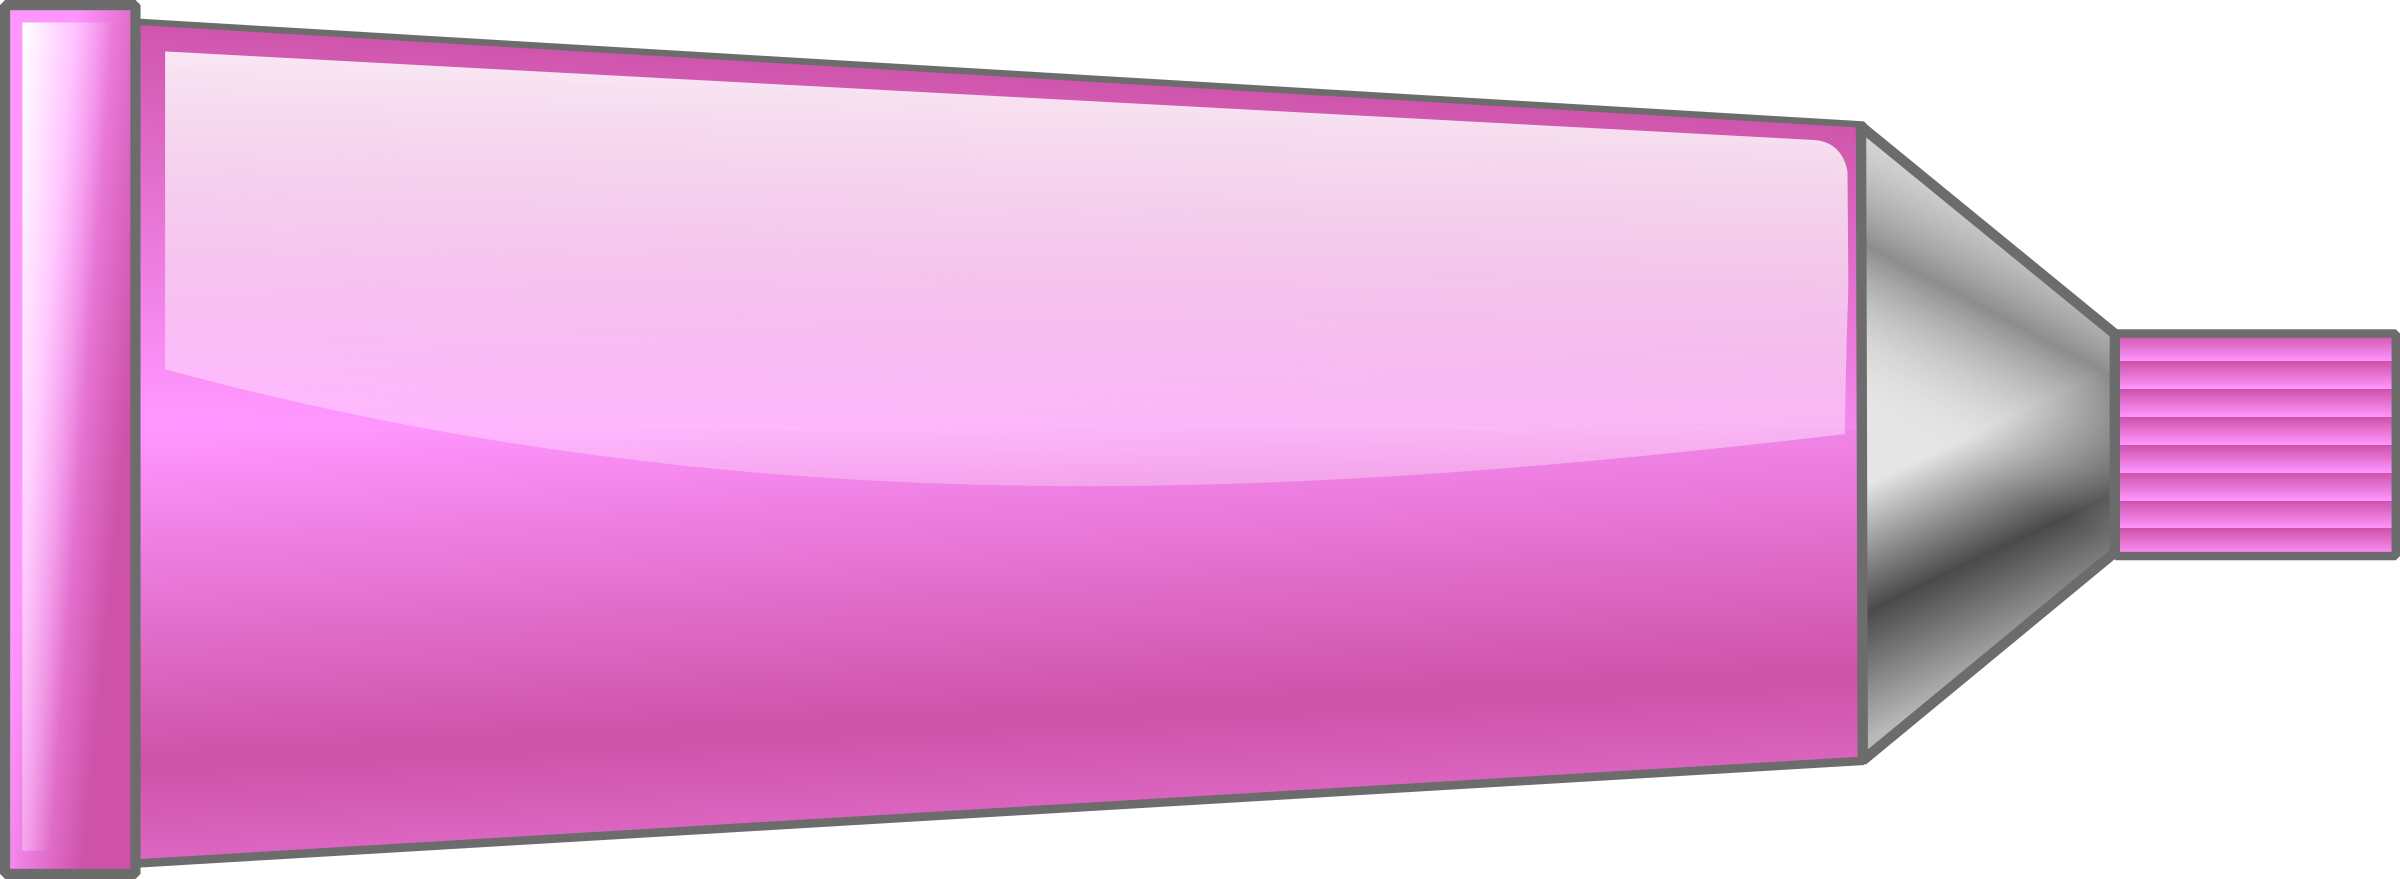 Color tube. Colors clipart pink